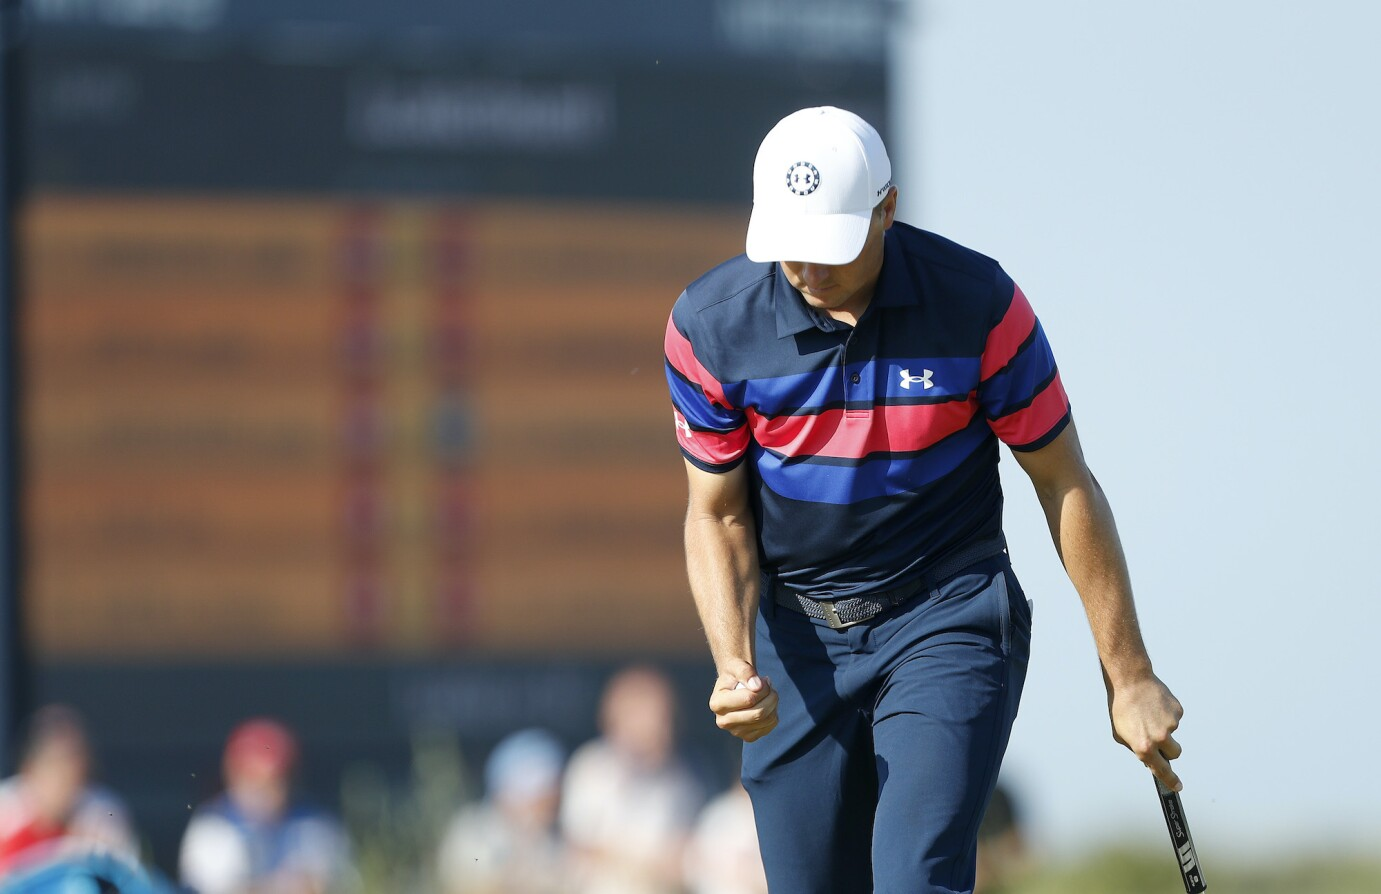 SANDWICH, ENGLAND - JULY 18: Jordan Spieth of the United States reacts on the green of the 14th hole during Day Four of The 149th Open at Royal St George's Golf Club on July 18, 2021 in Sandwich, England. (Photo by Oisin Keniry/Getty Images)